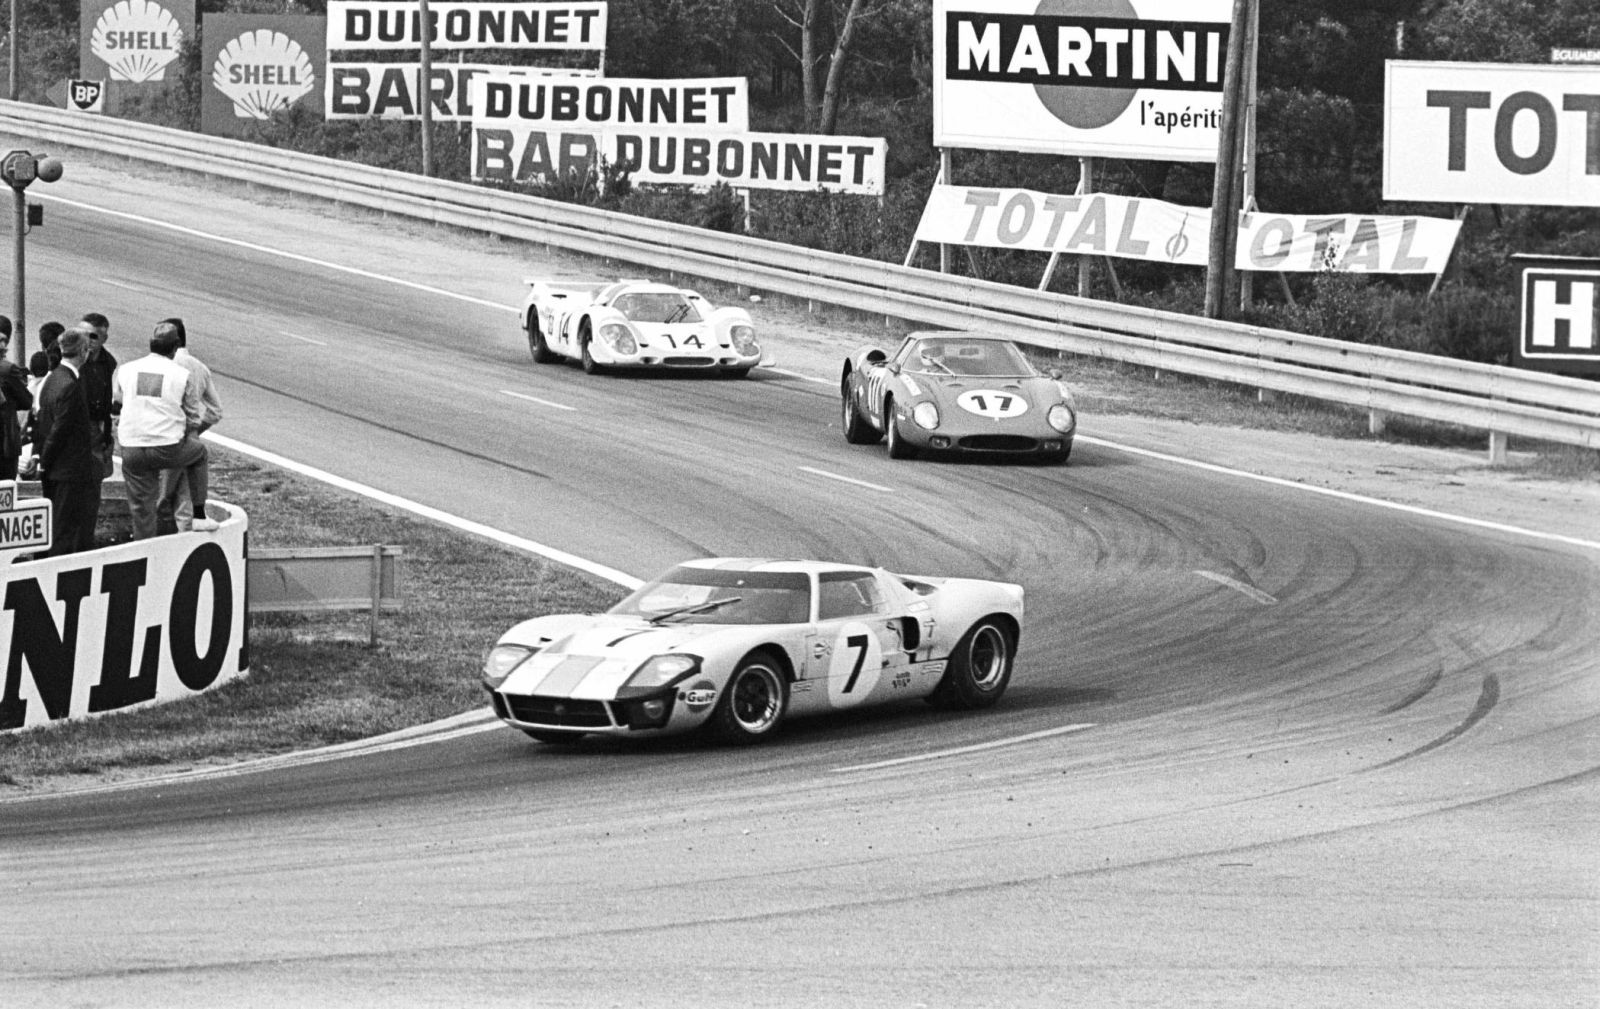 Ford Gt40 Ahead Of Ferrari At Le Mans 1969 Ford Gt40 Le Mans